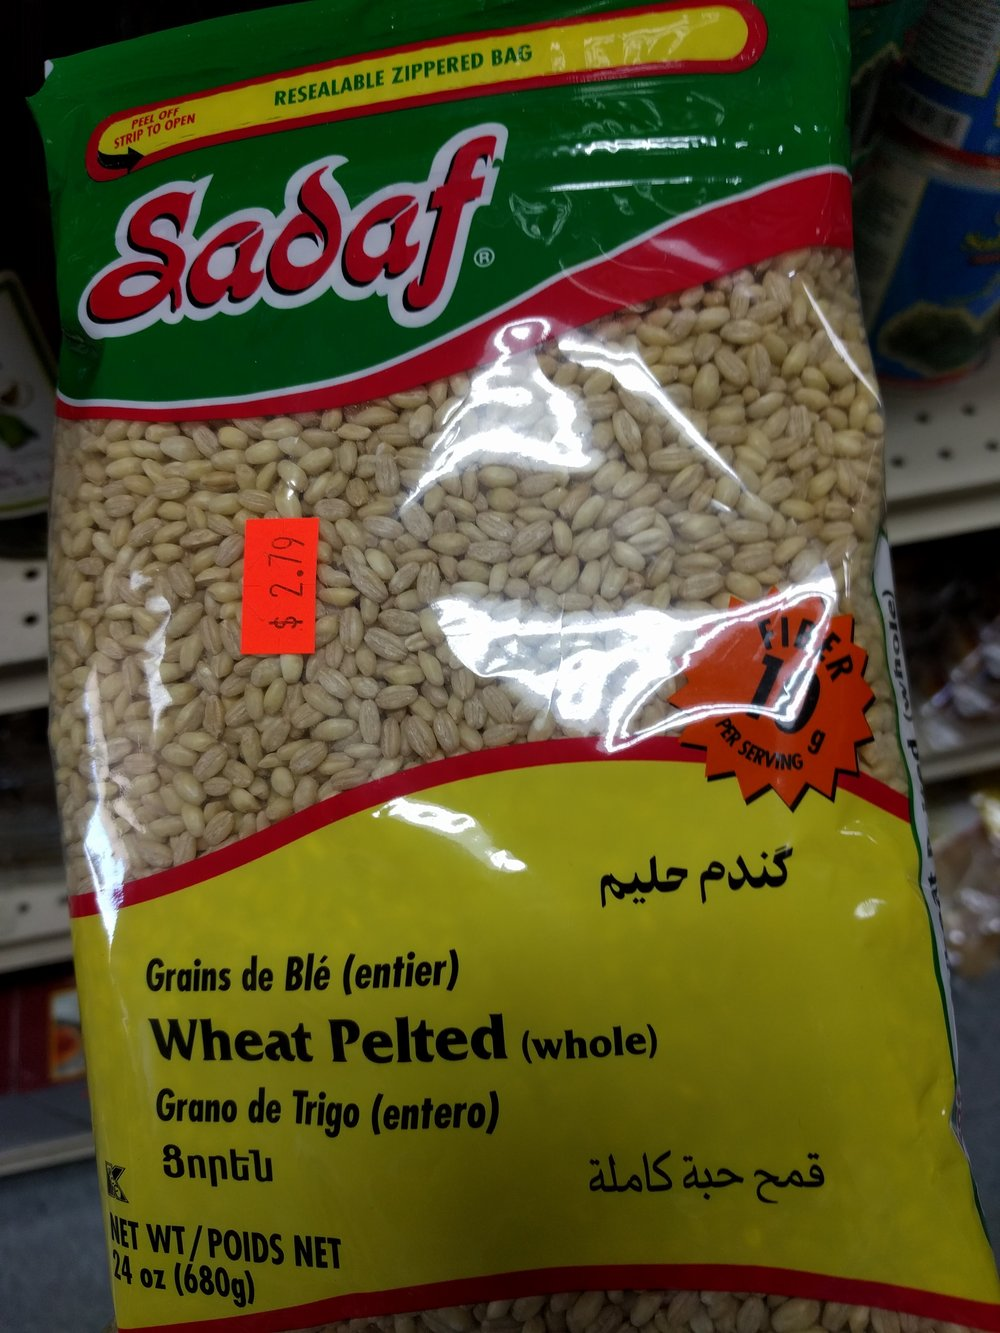 Wheat-Pekted-Whole-Pak-Halal-International-Foods-12259-W-87th-St-Pkwy-Lenexa-KS-66215.jpg